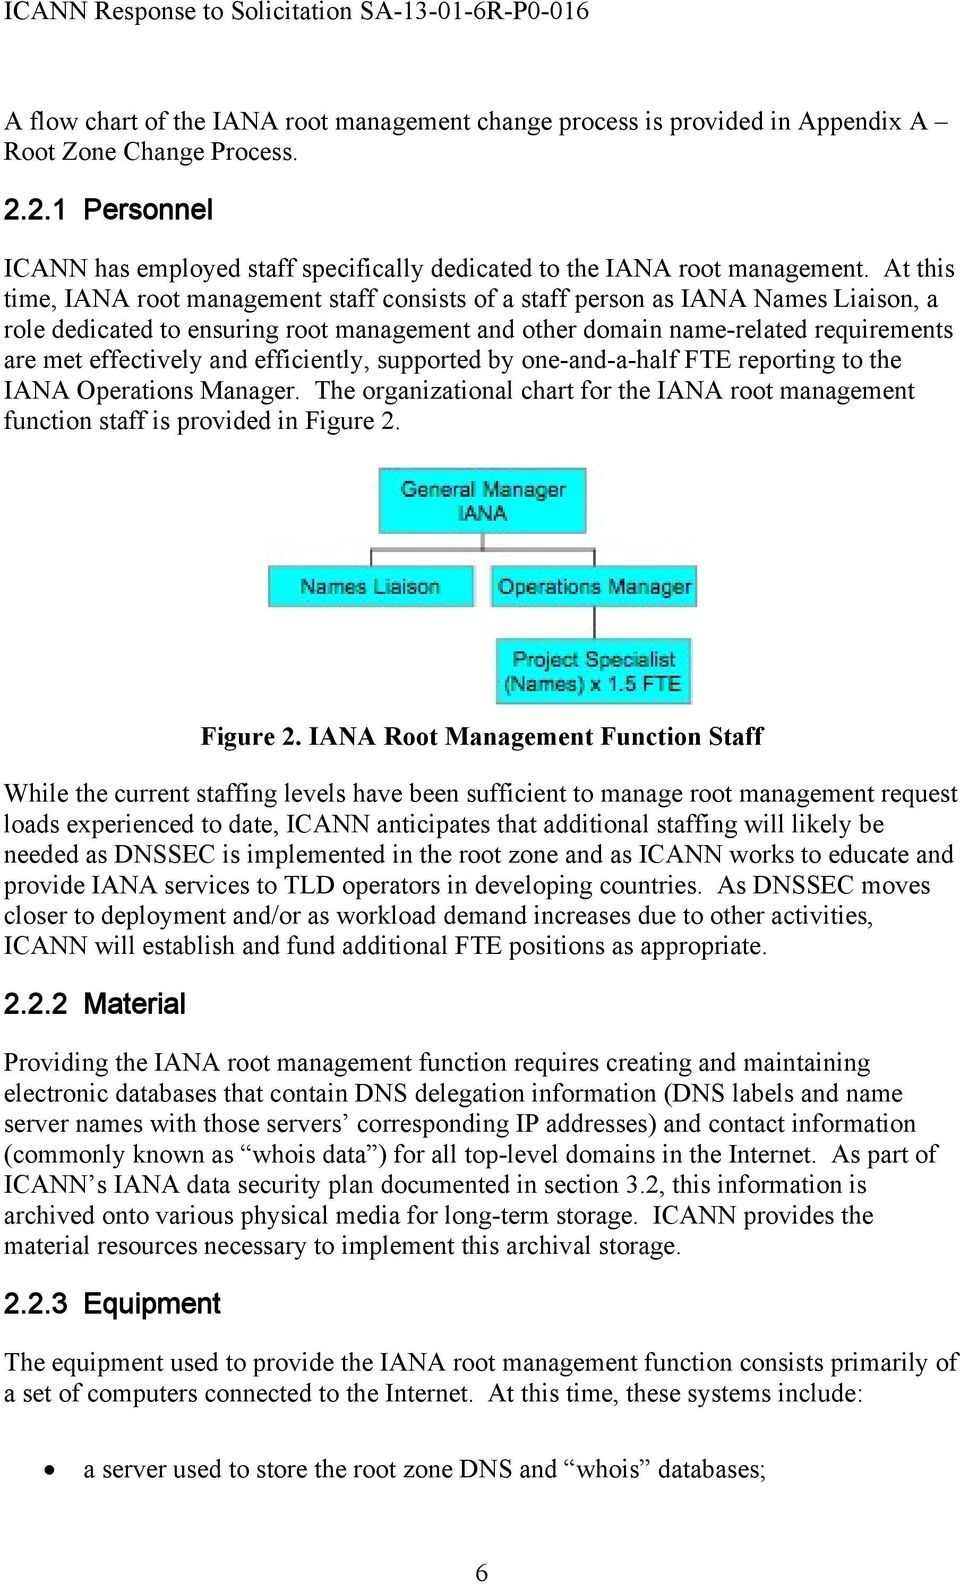 and efficiently, supported by one-and-a-half FTE reporting to the IANA Operations Manager. The organizational chart for the IANA root management function staff is provided in Figure 2.